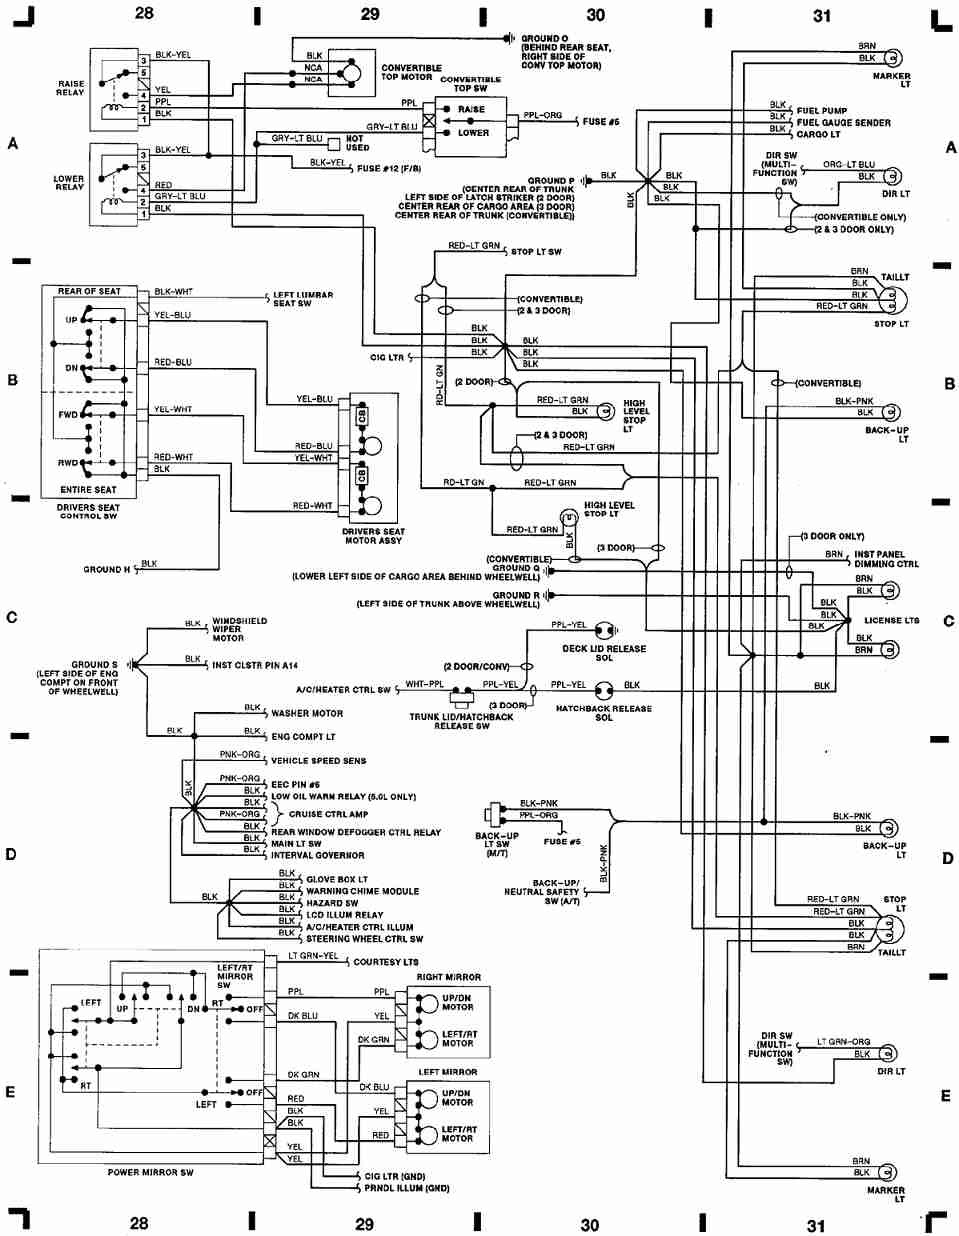 1988 Mustang Gt Wiring Diagram - Toggle Switch Wiring Diagram Turn Signal -  cts-lsa.sampwire.jeanjaures37.frWiring Diagram Resource